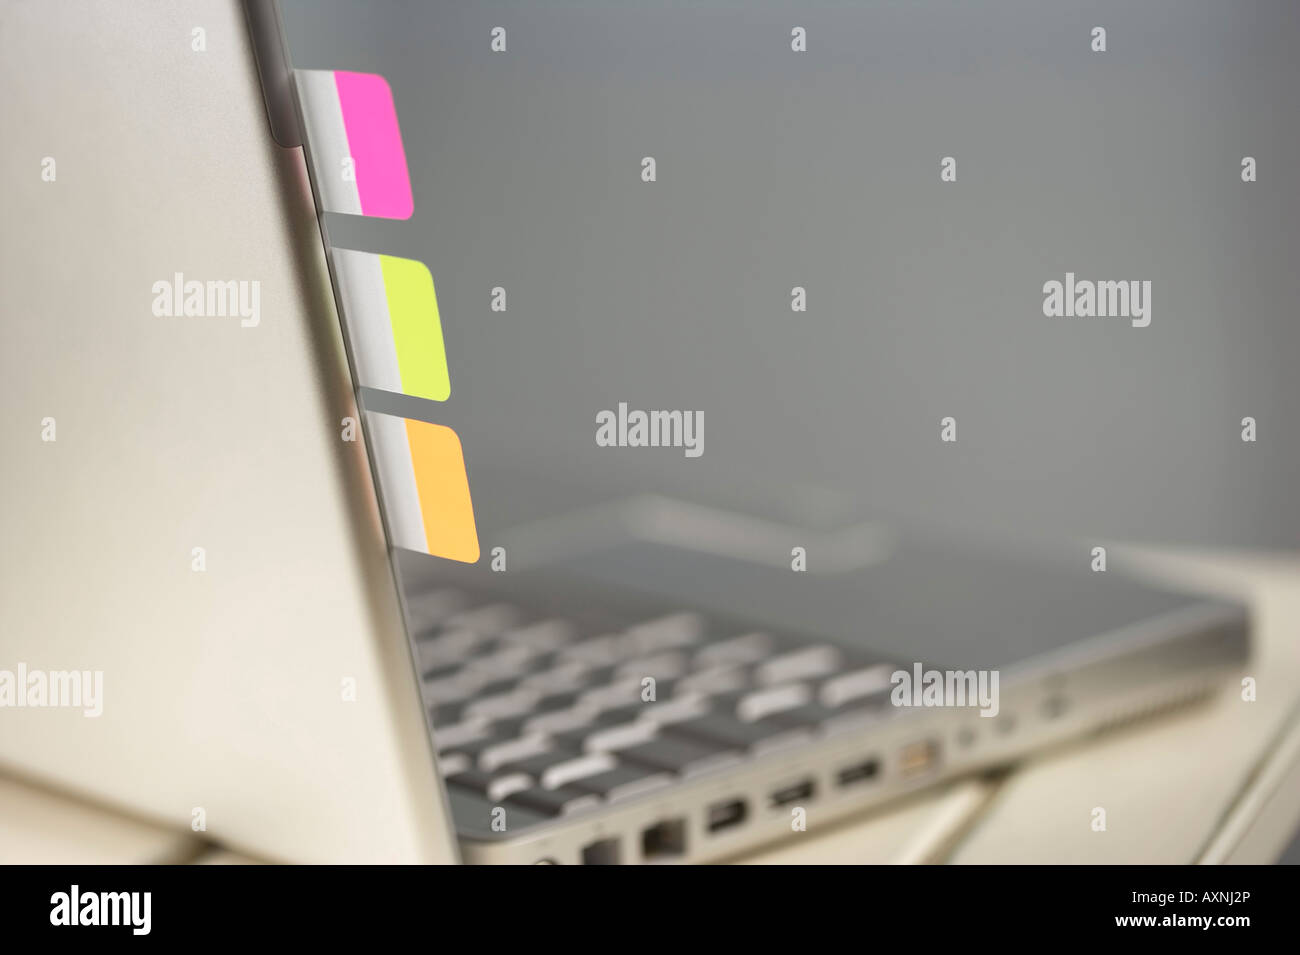 Post-it notes at a laptop - Stock Image